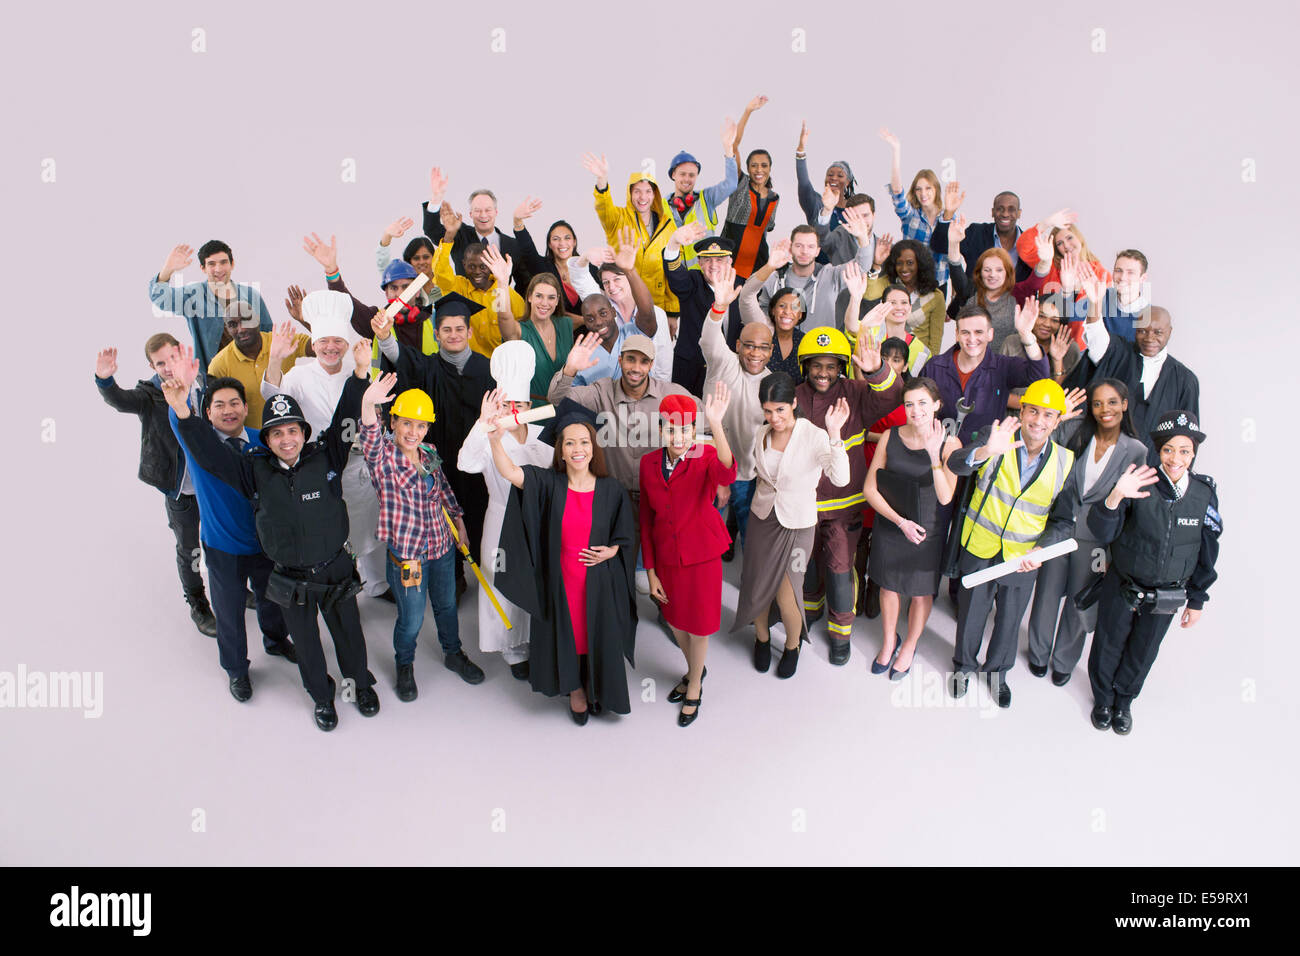 Portrait of diverse workforce - Stock Image